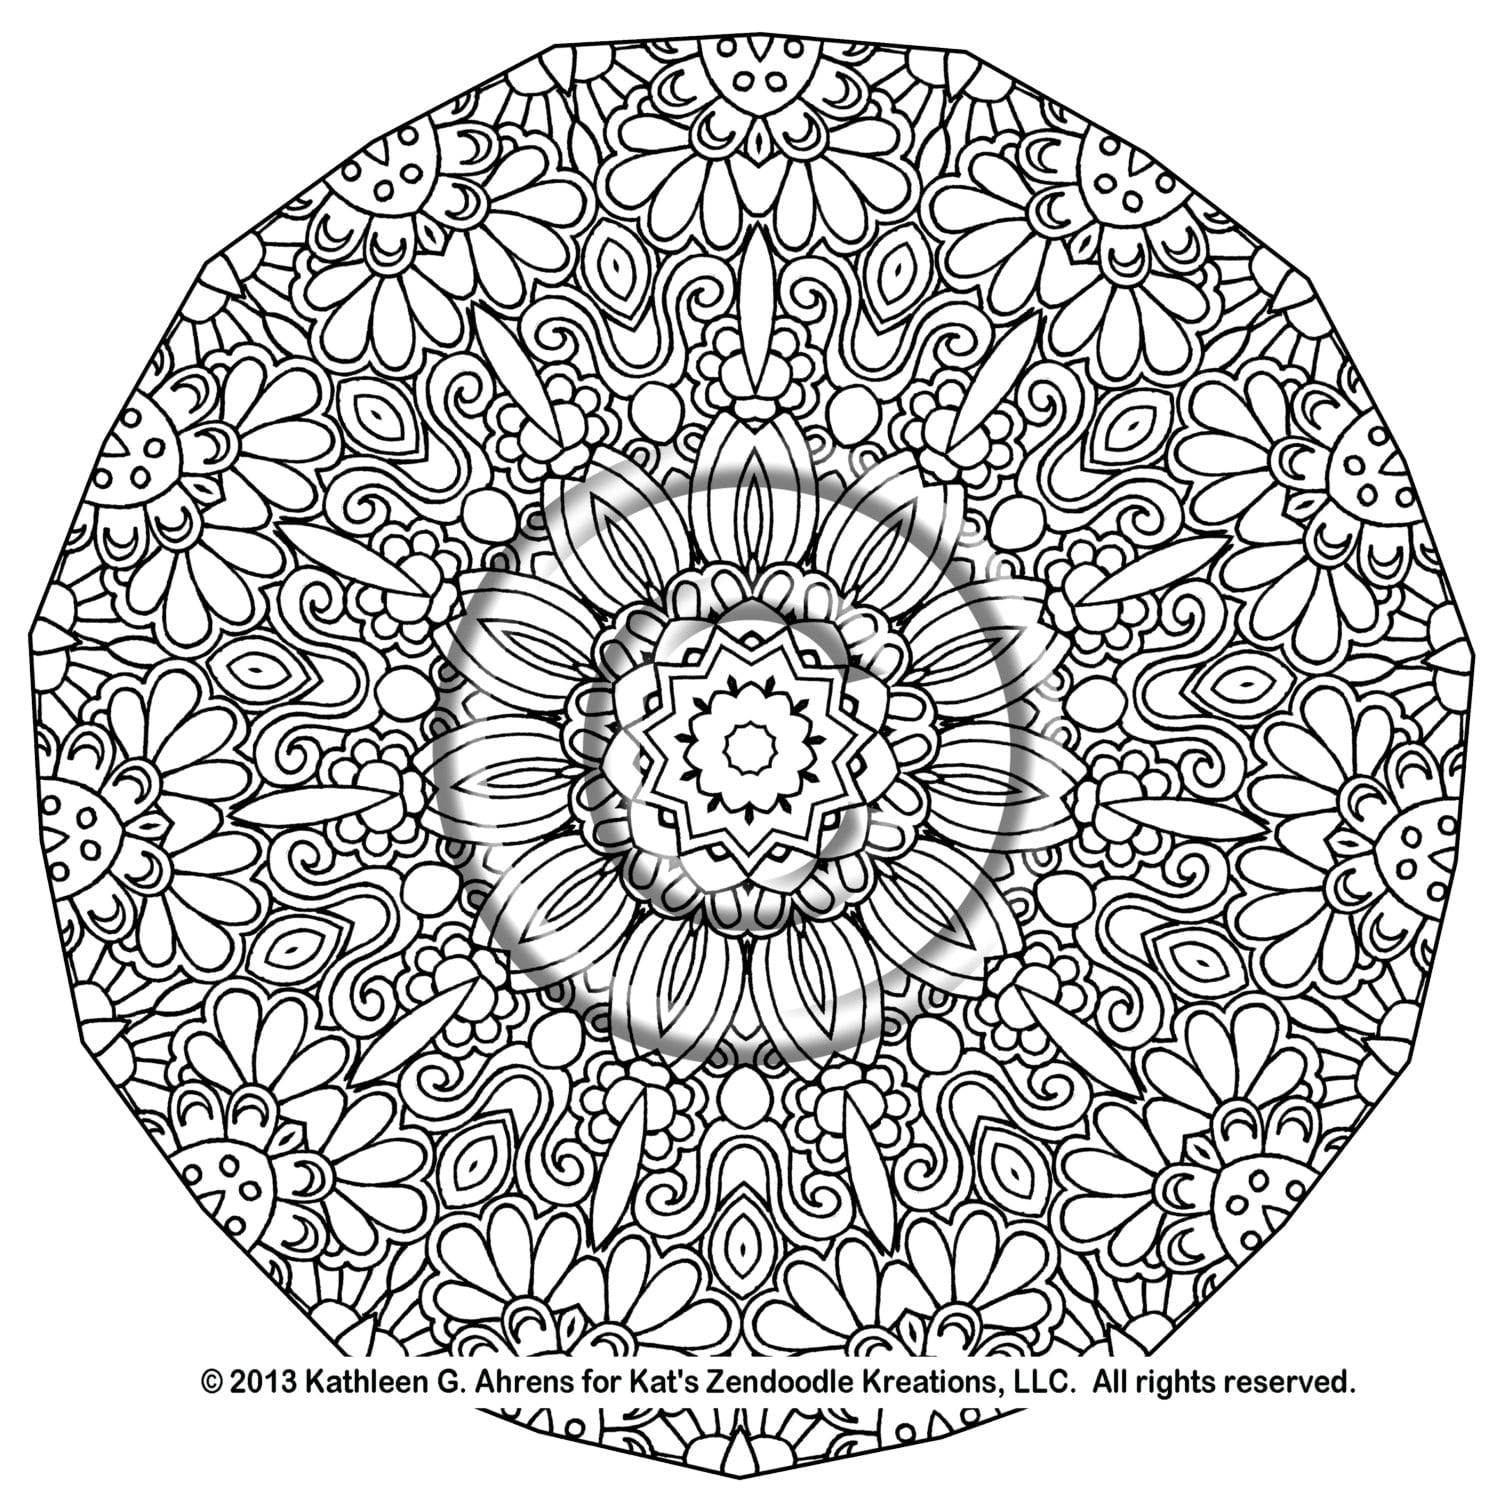 Get This Free Complex Coloring Pages To Print For Adults S4vhy At